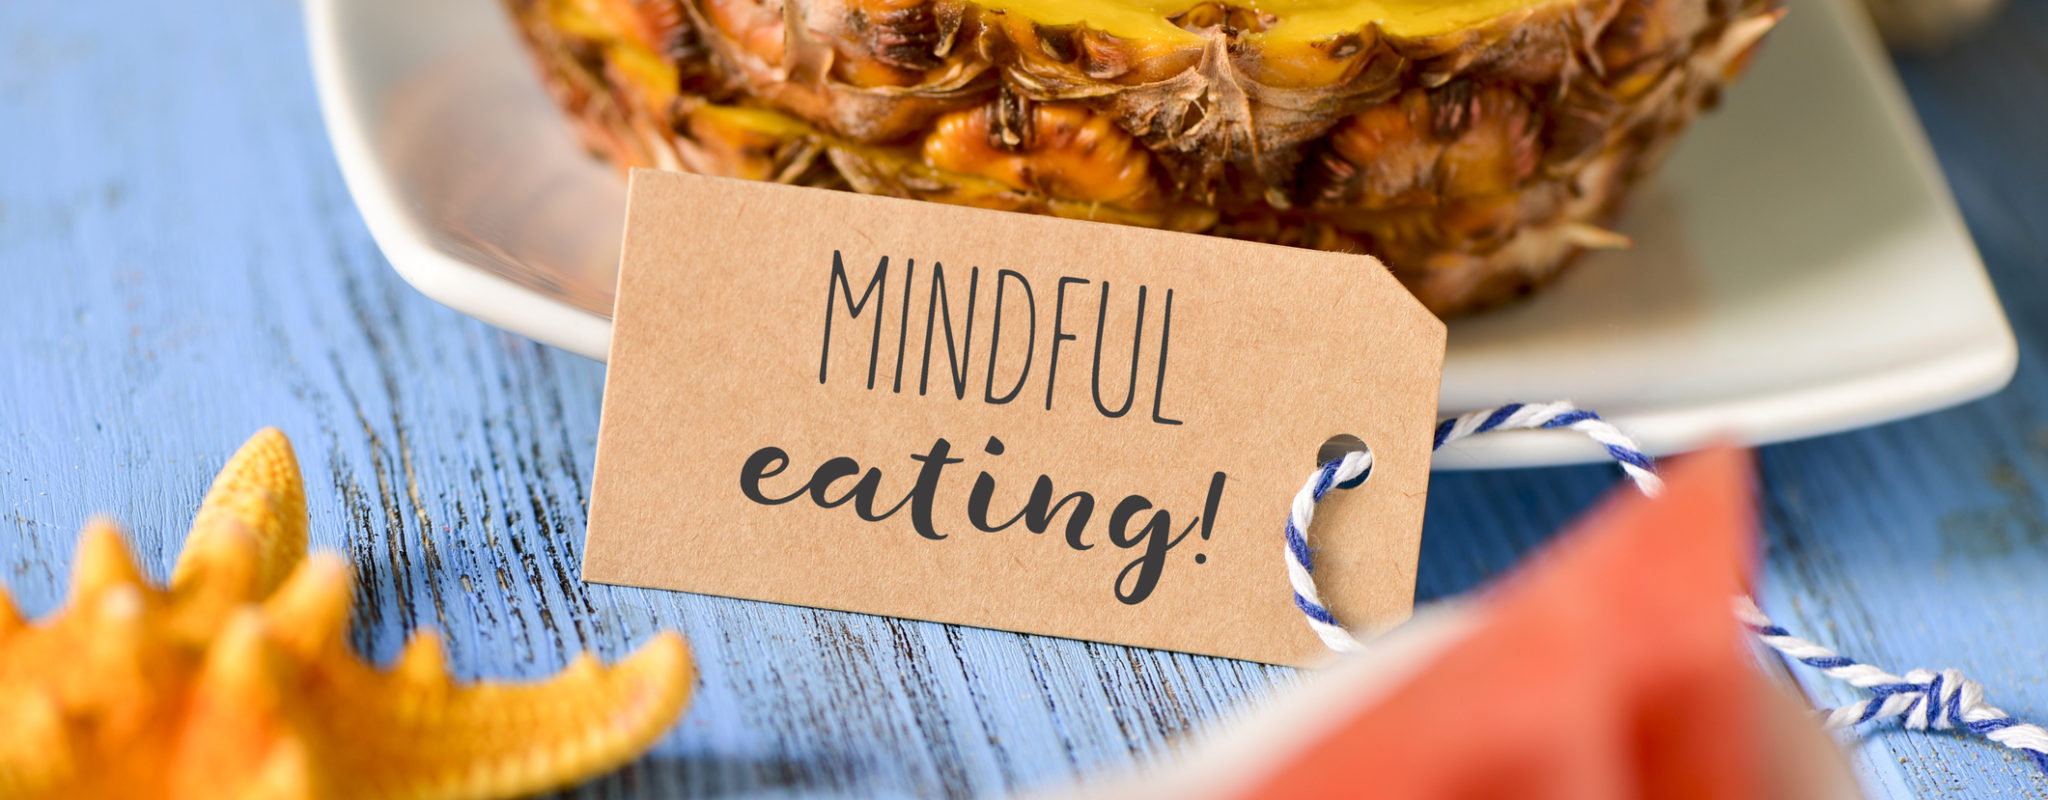 Mindful Eating, Powered by Nemours Children's Health System